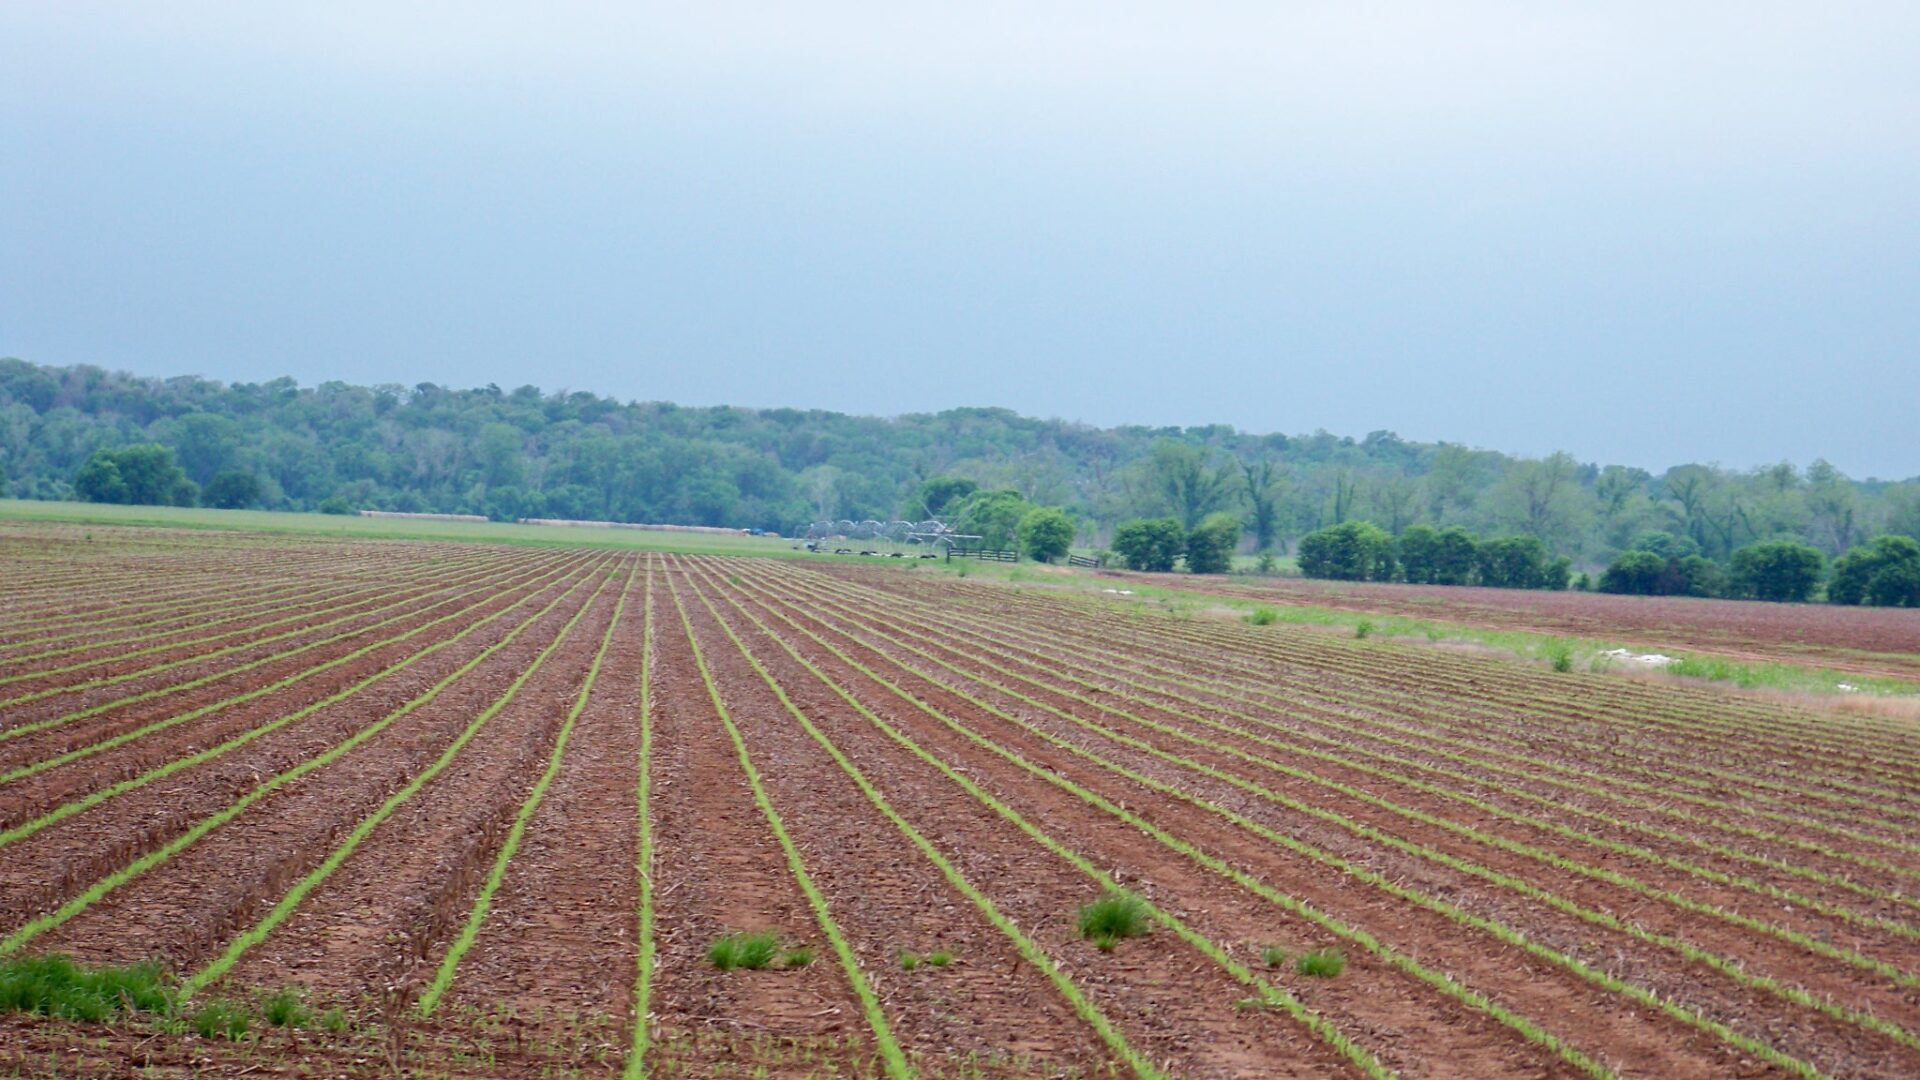 Newly planted cotton